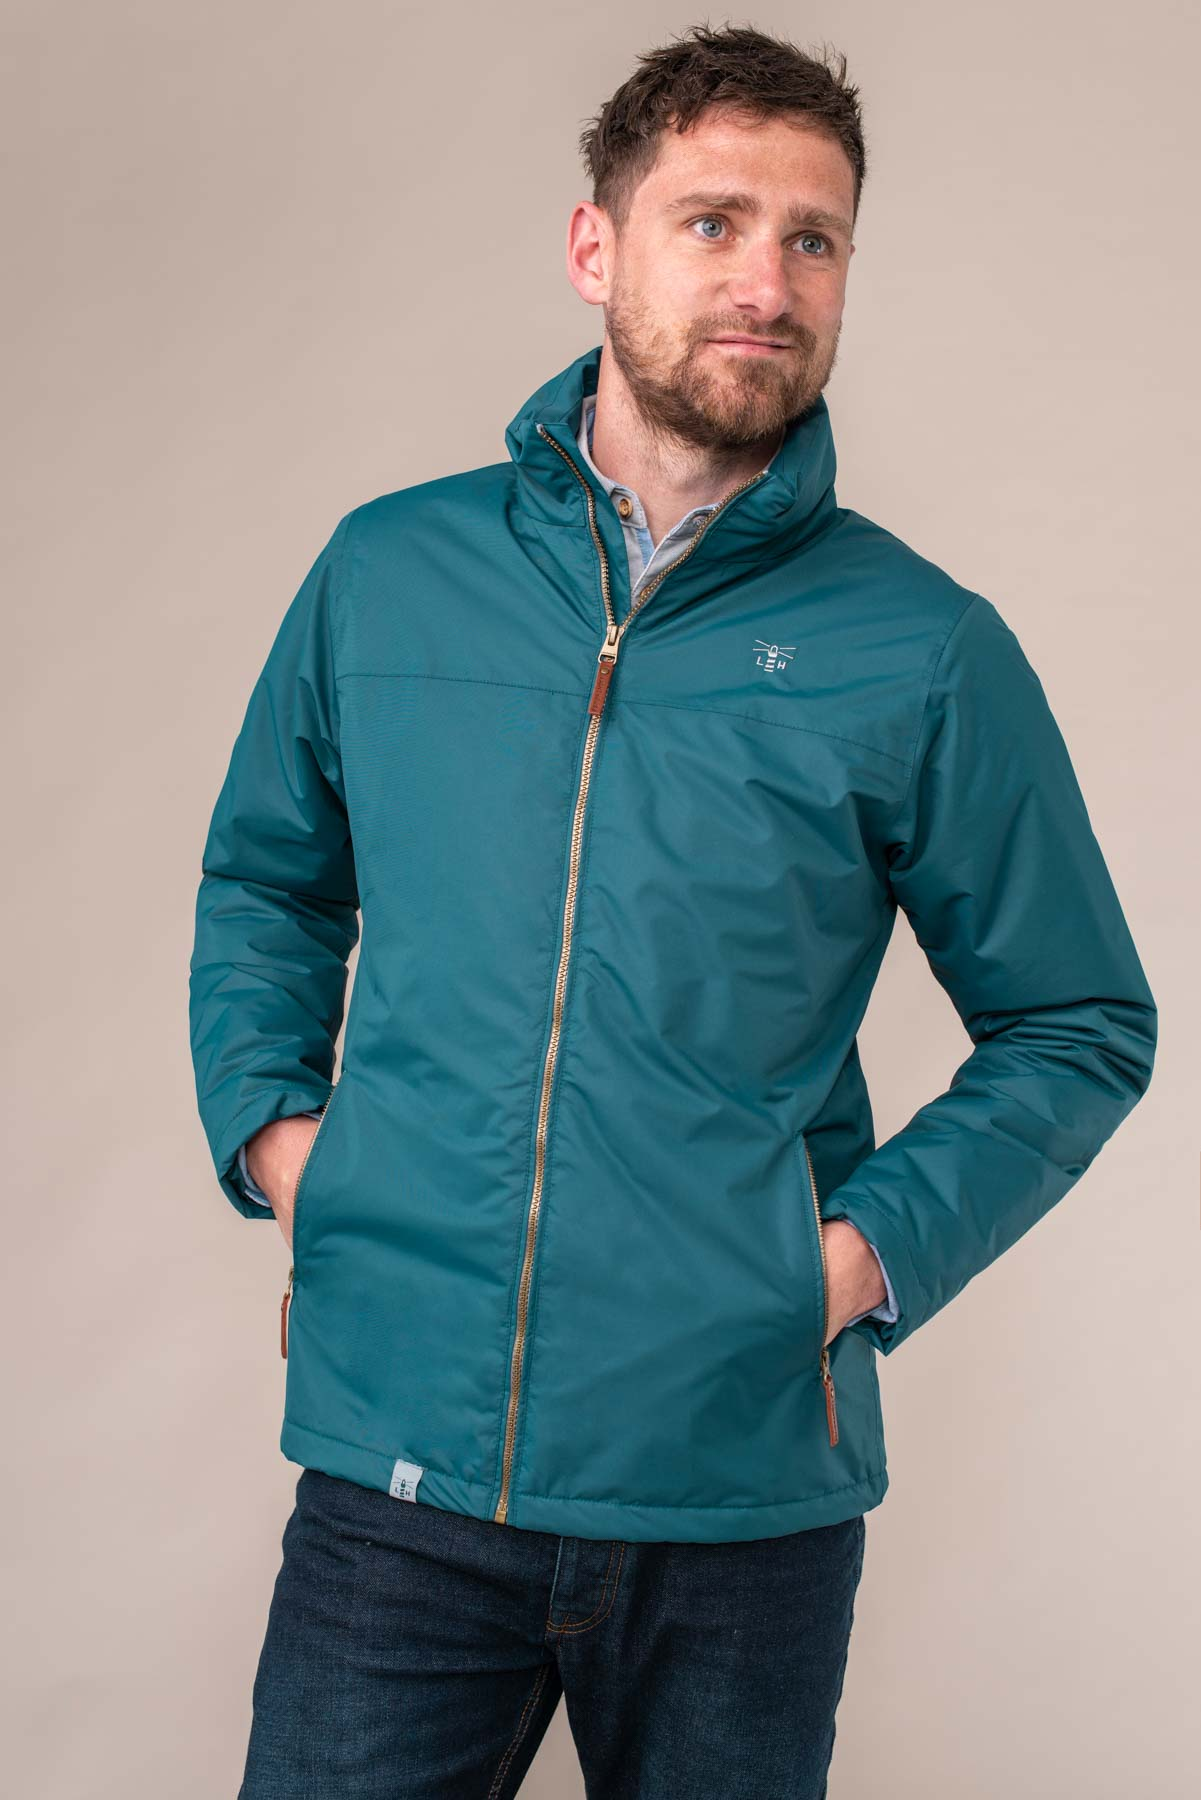 Harbour Coat - Blue. Men's Warm Padded Waterproof Coat | Lighthouse